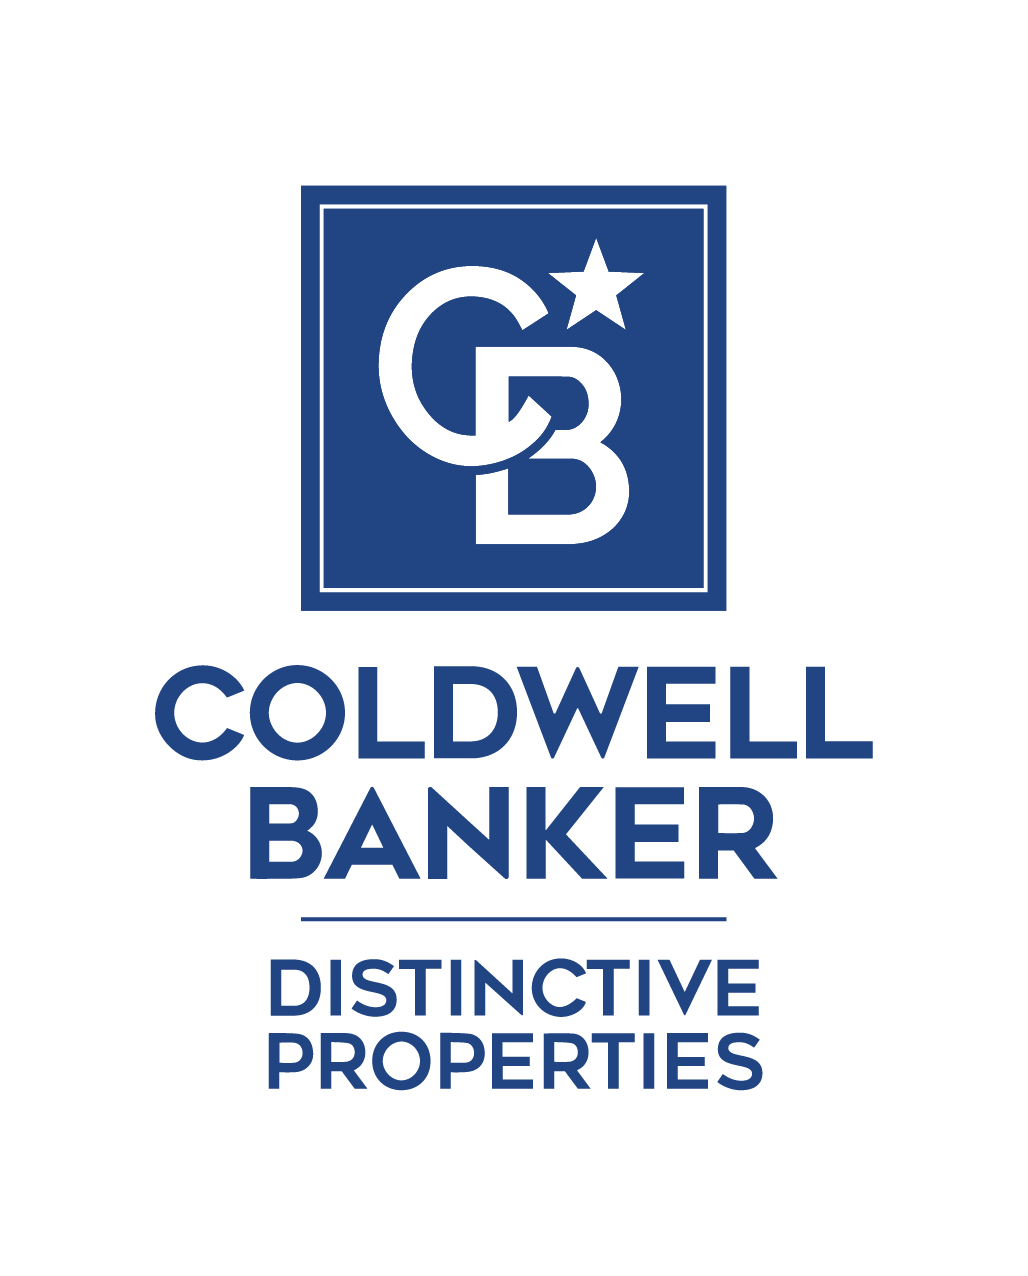 Dan Mohr - Coldwell Banker Distinctive Properties